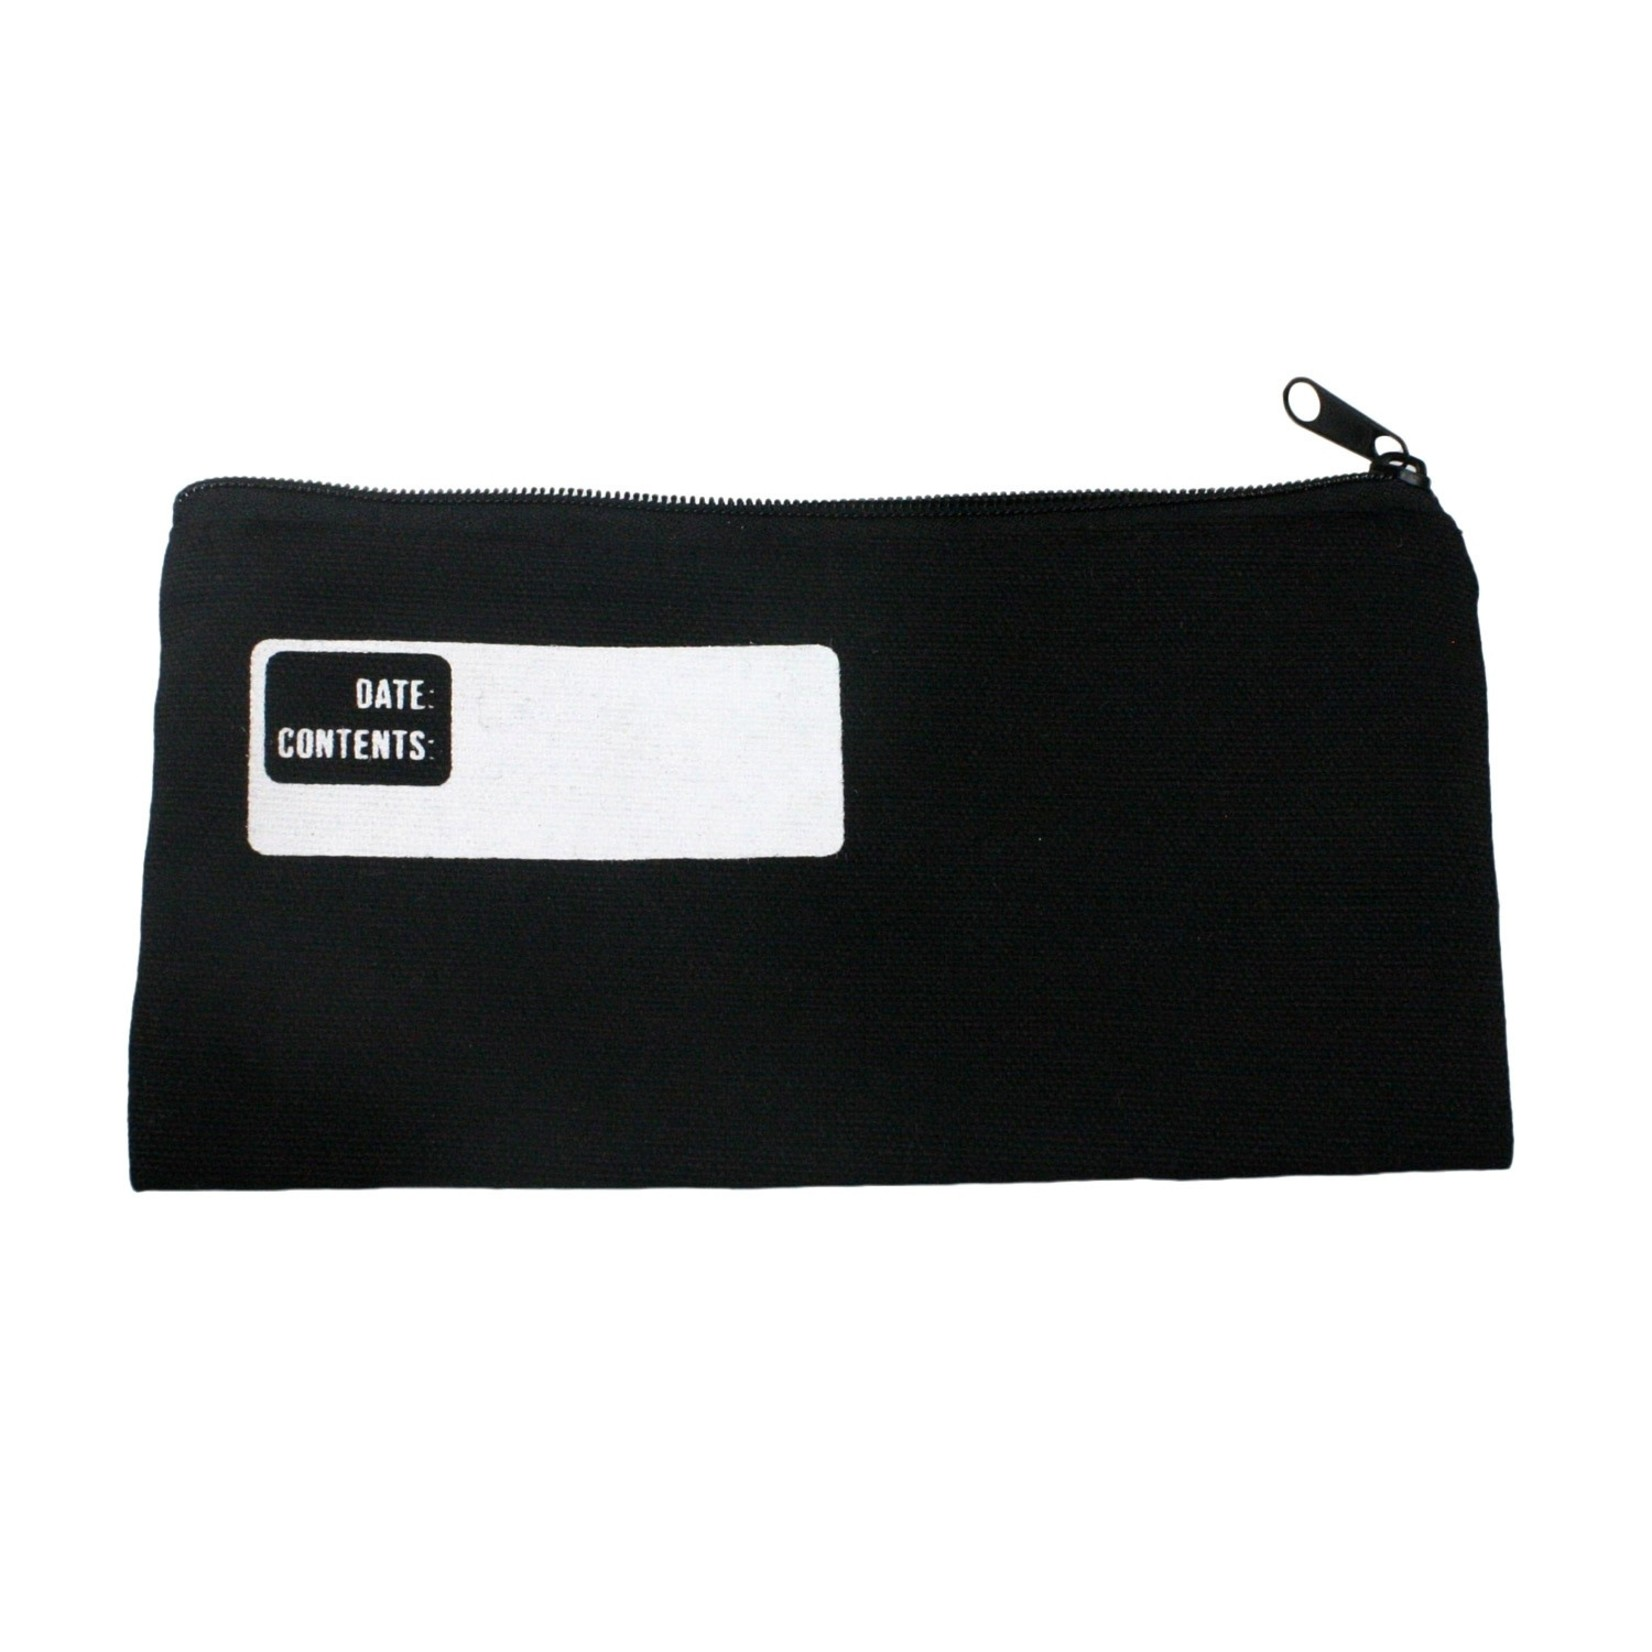 HomArt HomArt Canvas Zipper Bag Black